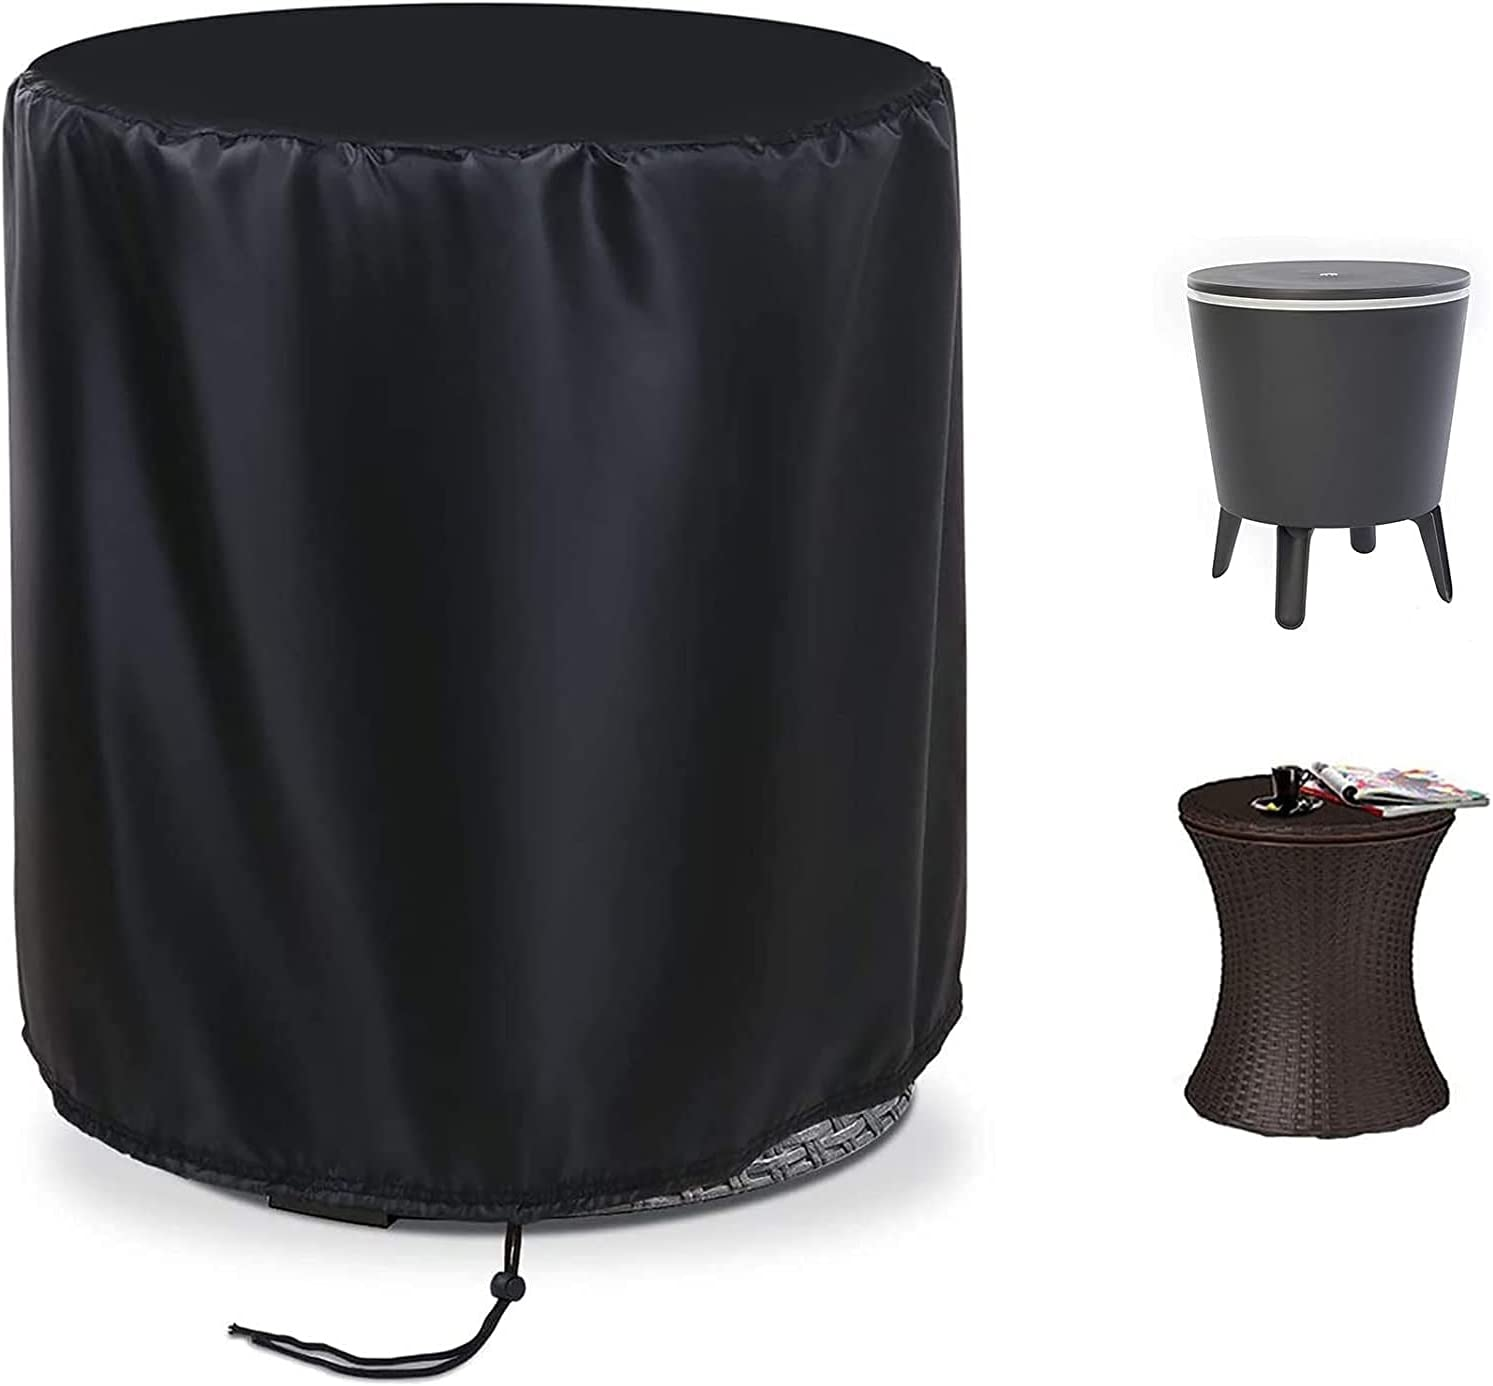 Patio Cooler Bar Table Cover Design for Keter 7.5-Gal Cool Bar Table, Outdoor Patio Round Beer Cooler Table Cover, Waterproof Barrel Cool Bar Table Cover, 21